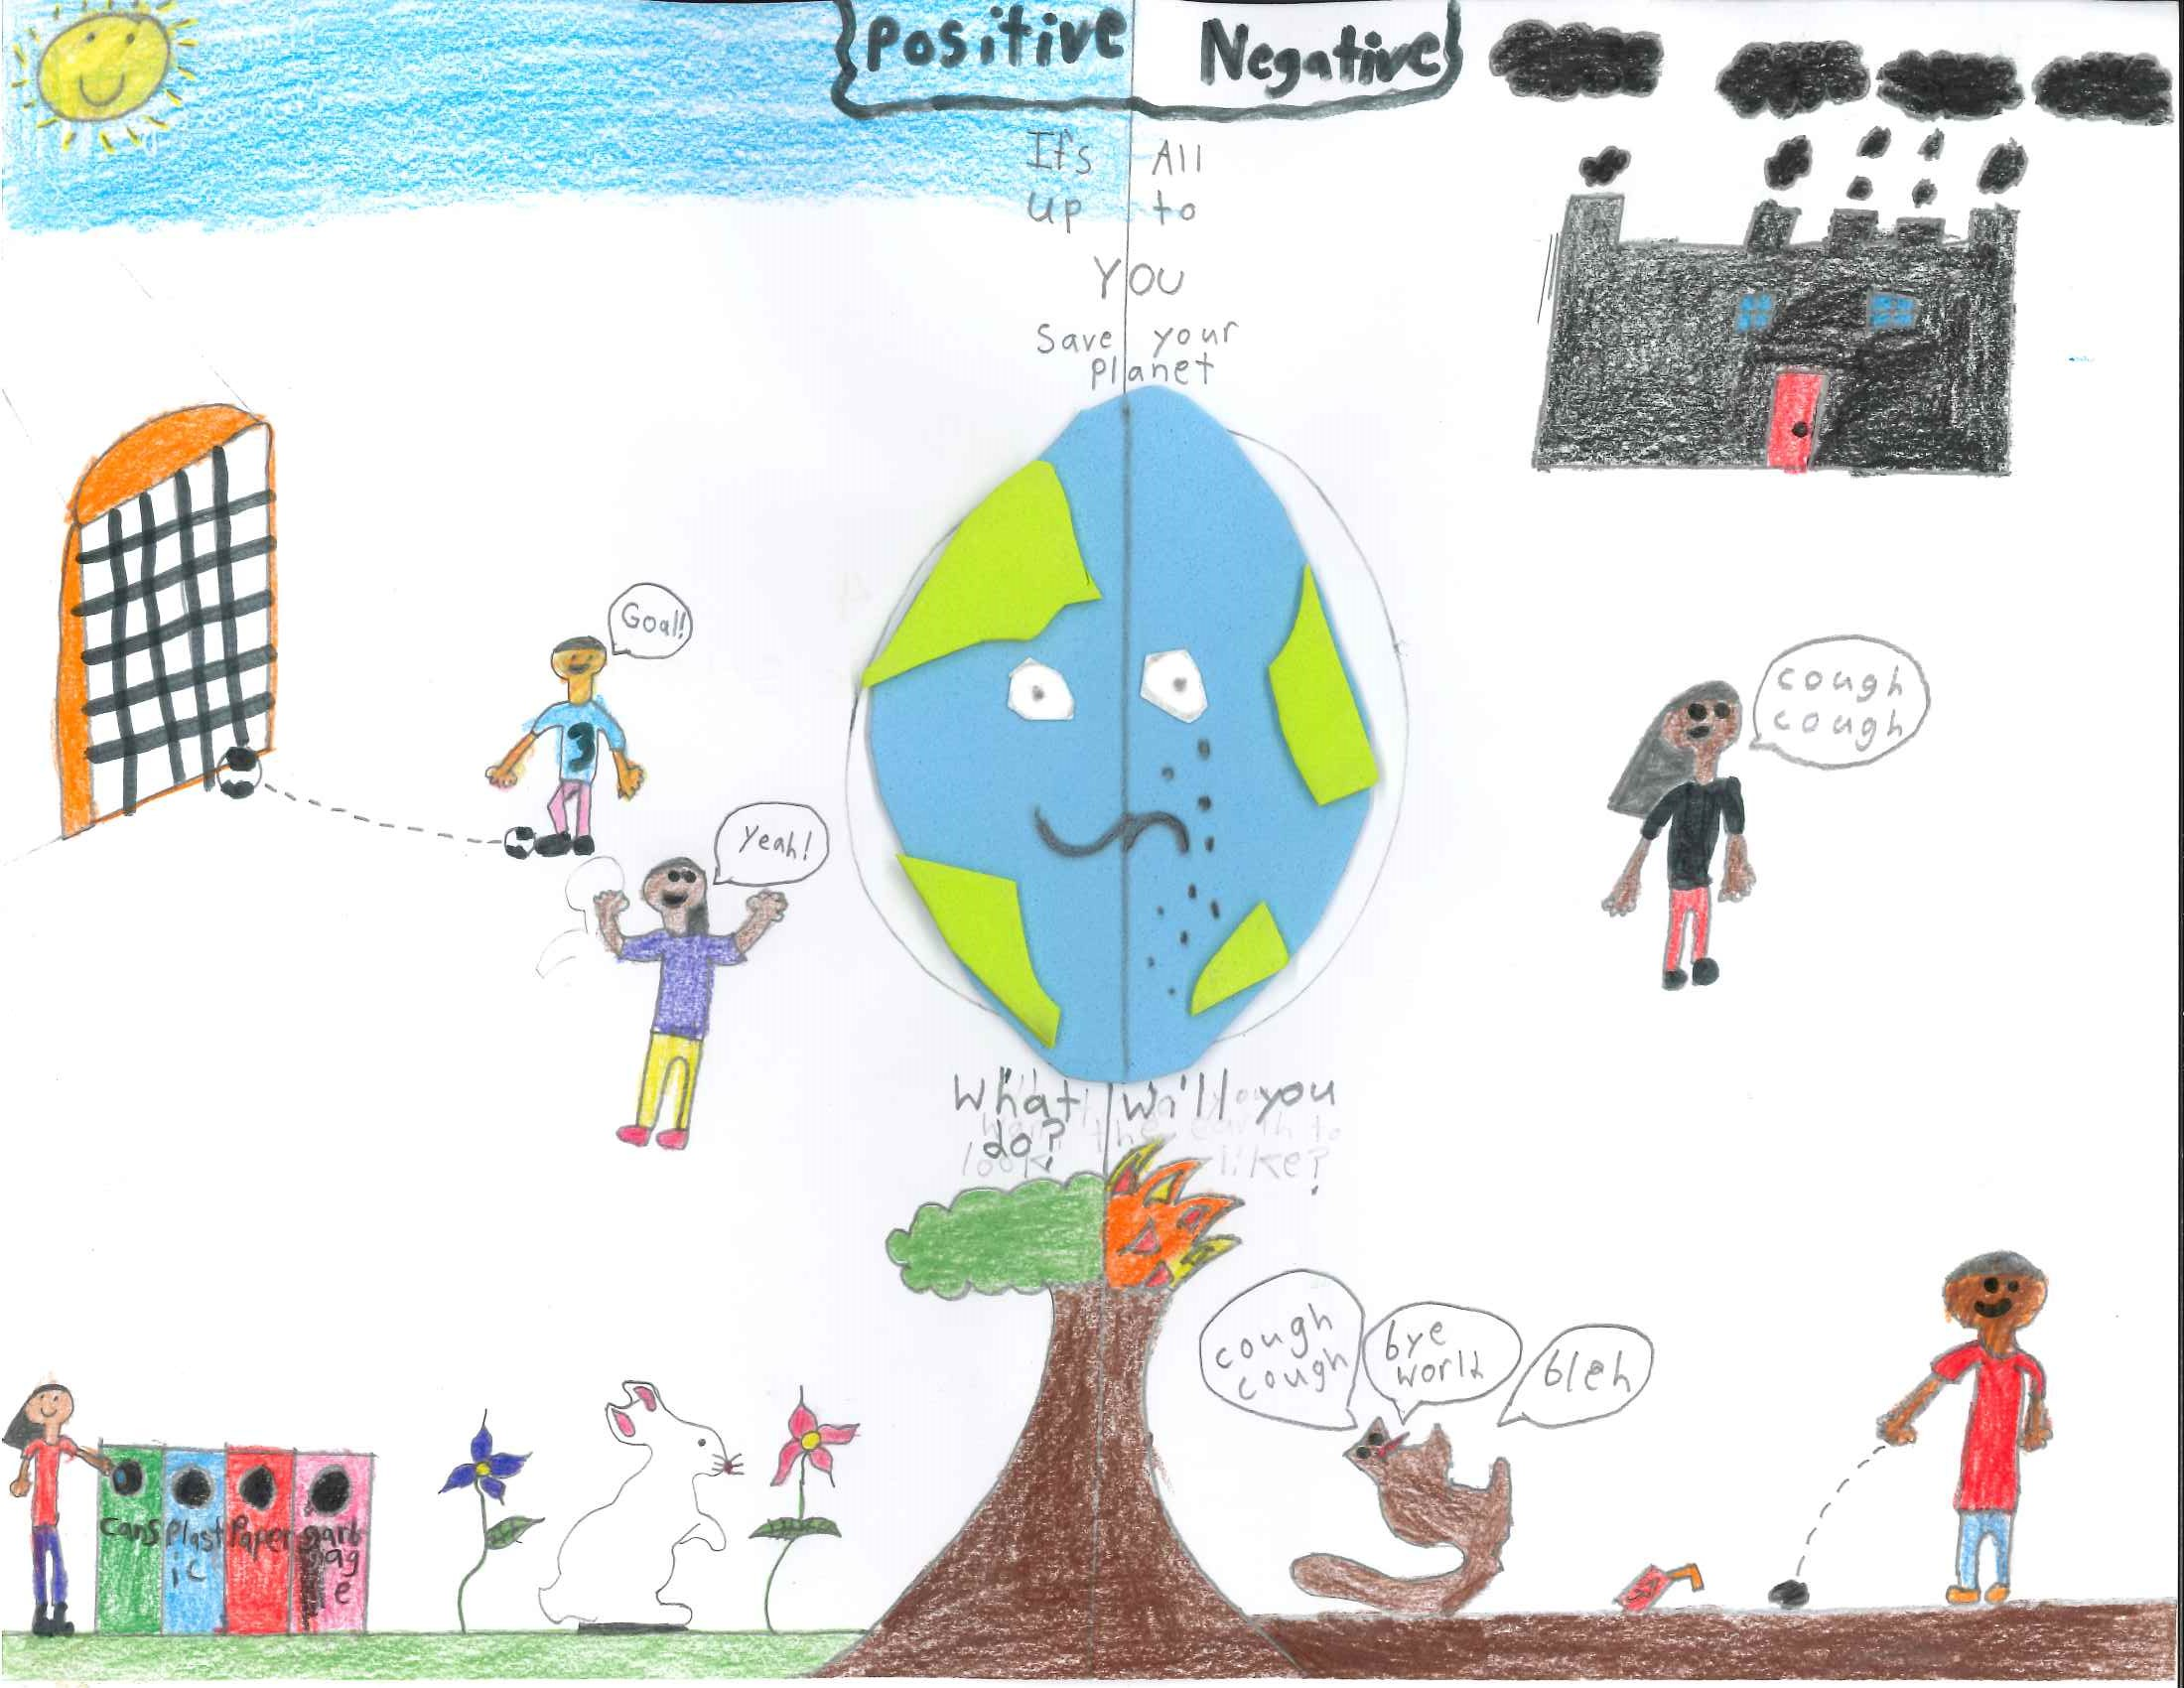 Manroop, Grade 4 drawing, positive and negative choices and their environmental impacts